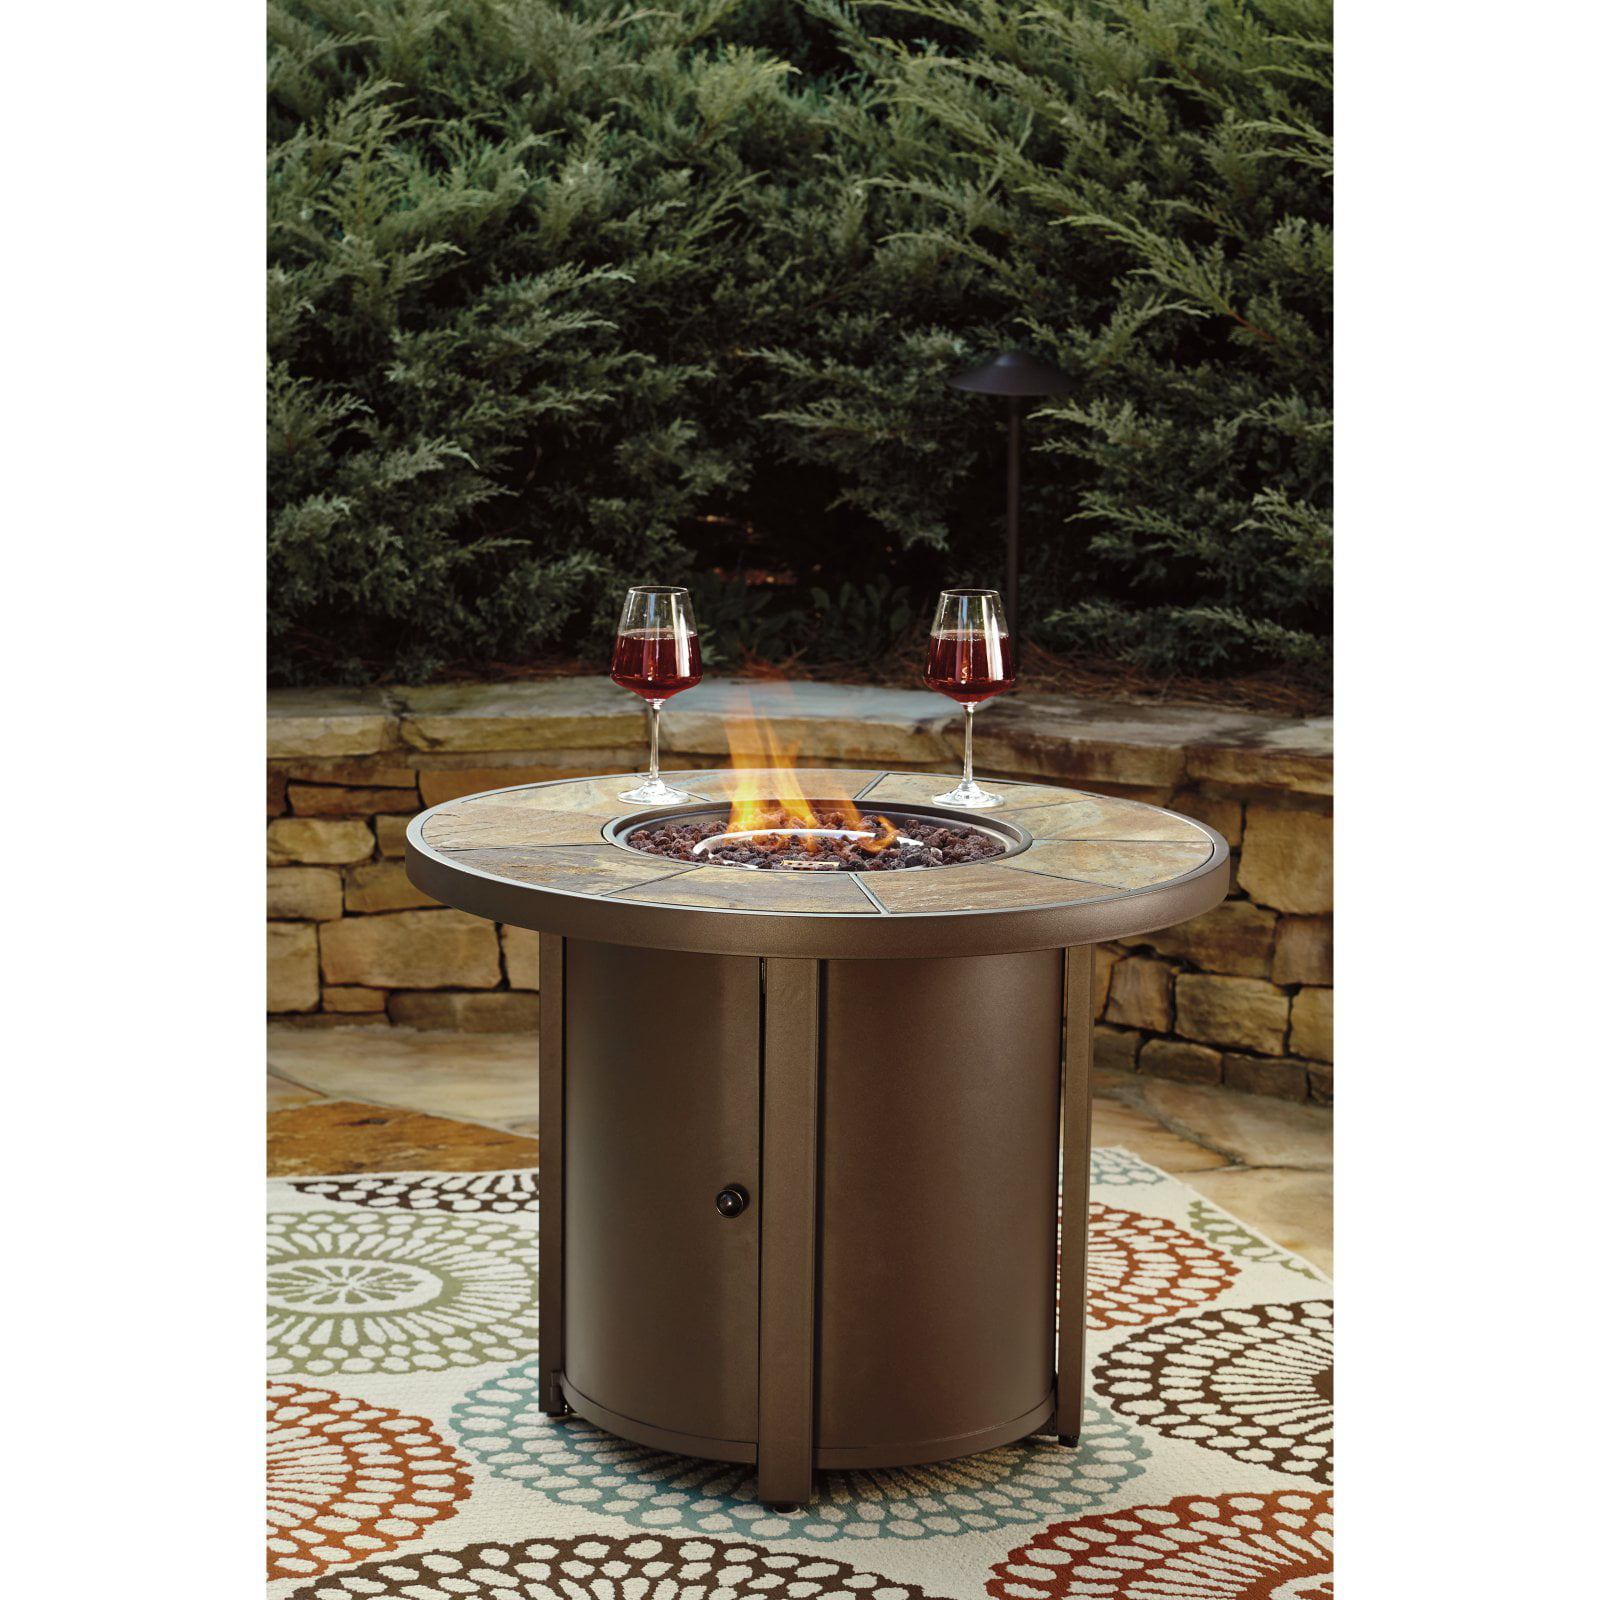 Signature Design by Ashley Predmore Propane Gas Round Patio Firepit Table by Ashley Furniture